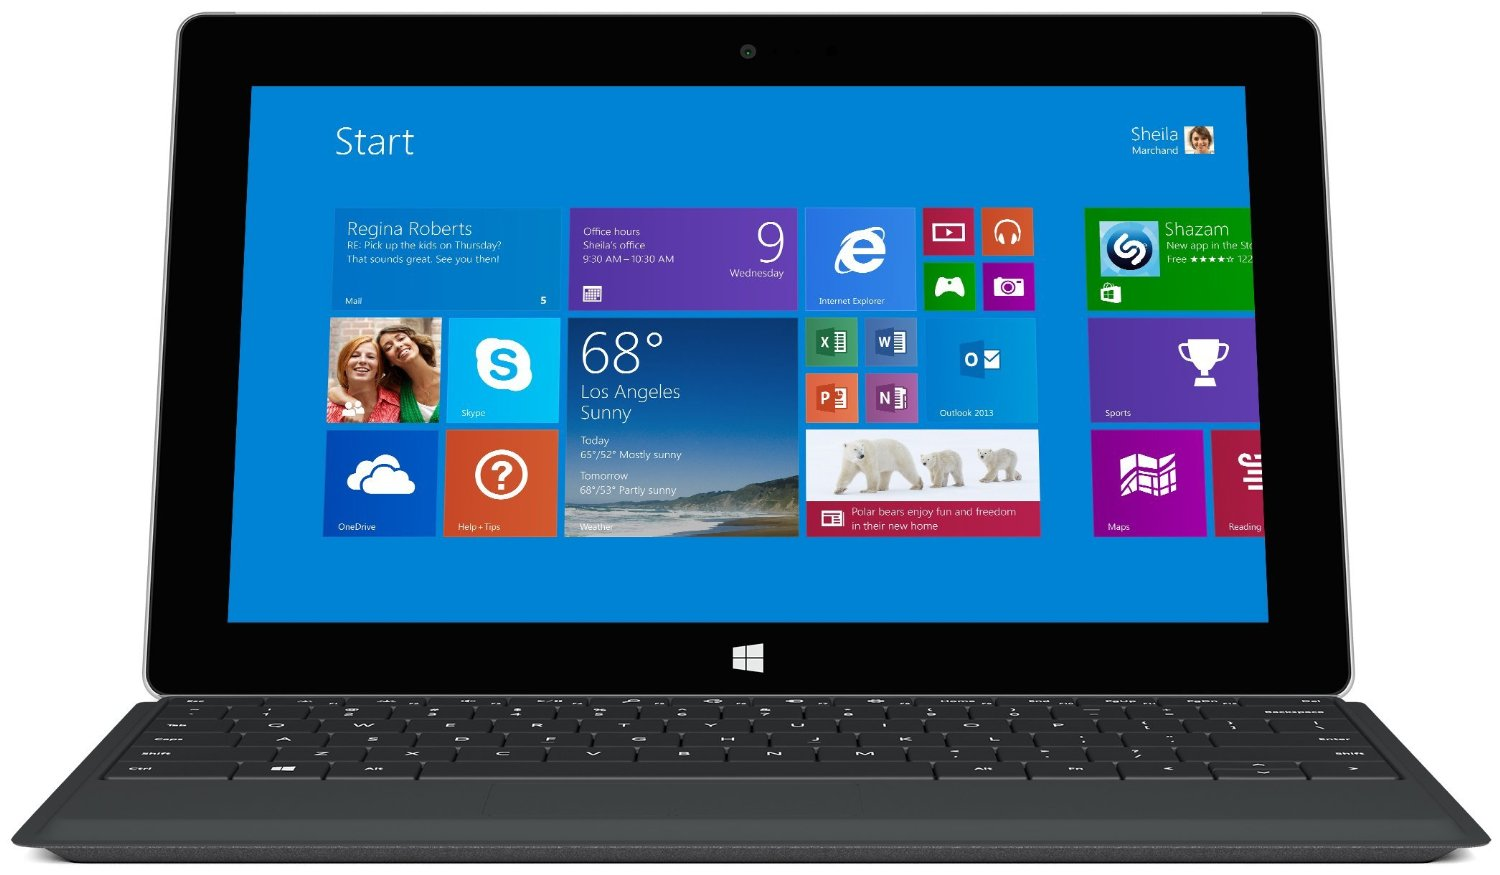 microsoft surface 2 10 6 tablet 2gb 32gb windows rt 8 1. Black Bedroom Furniture Sets. Home Design Ideas